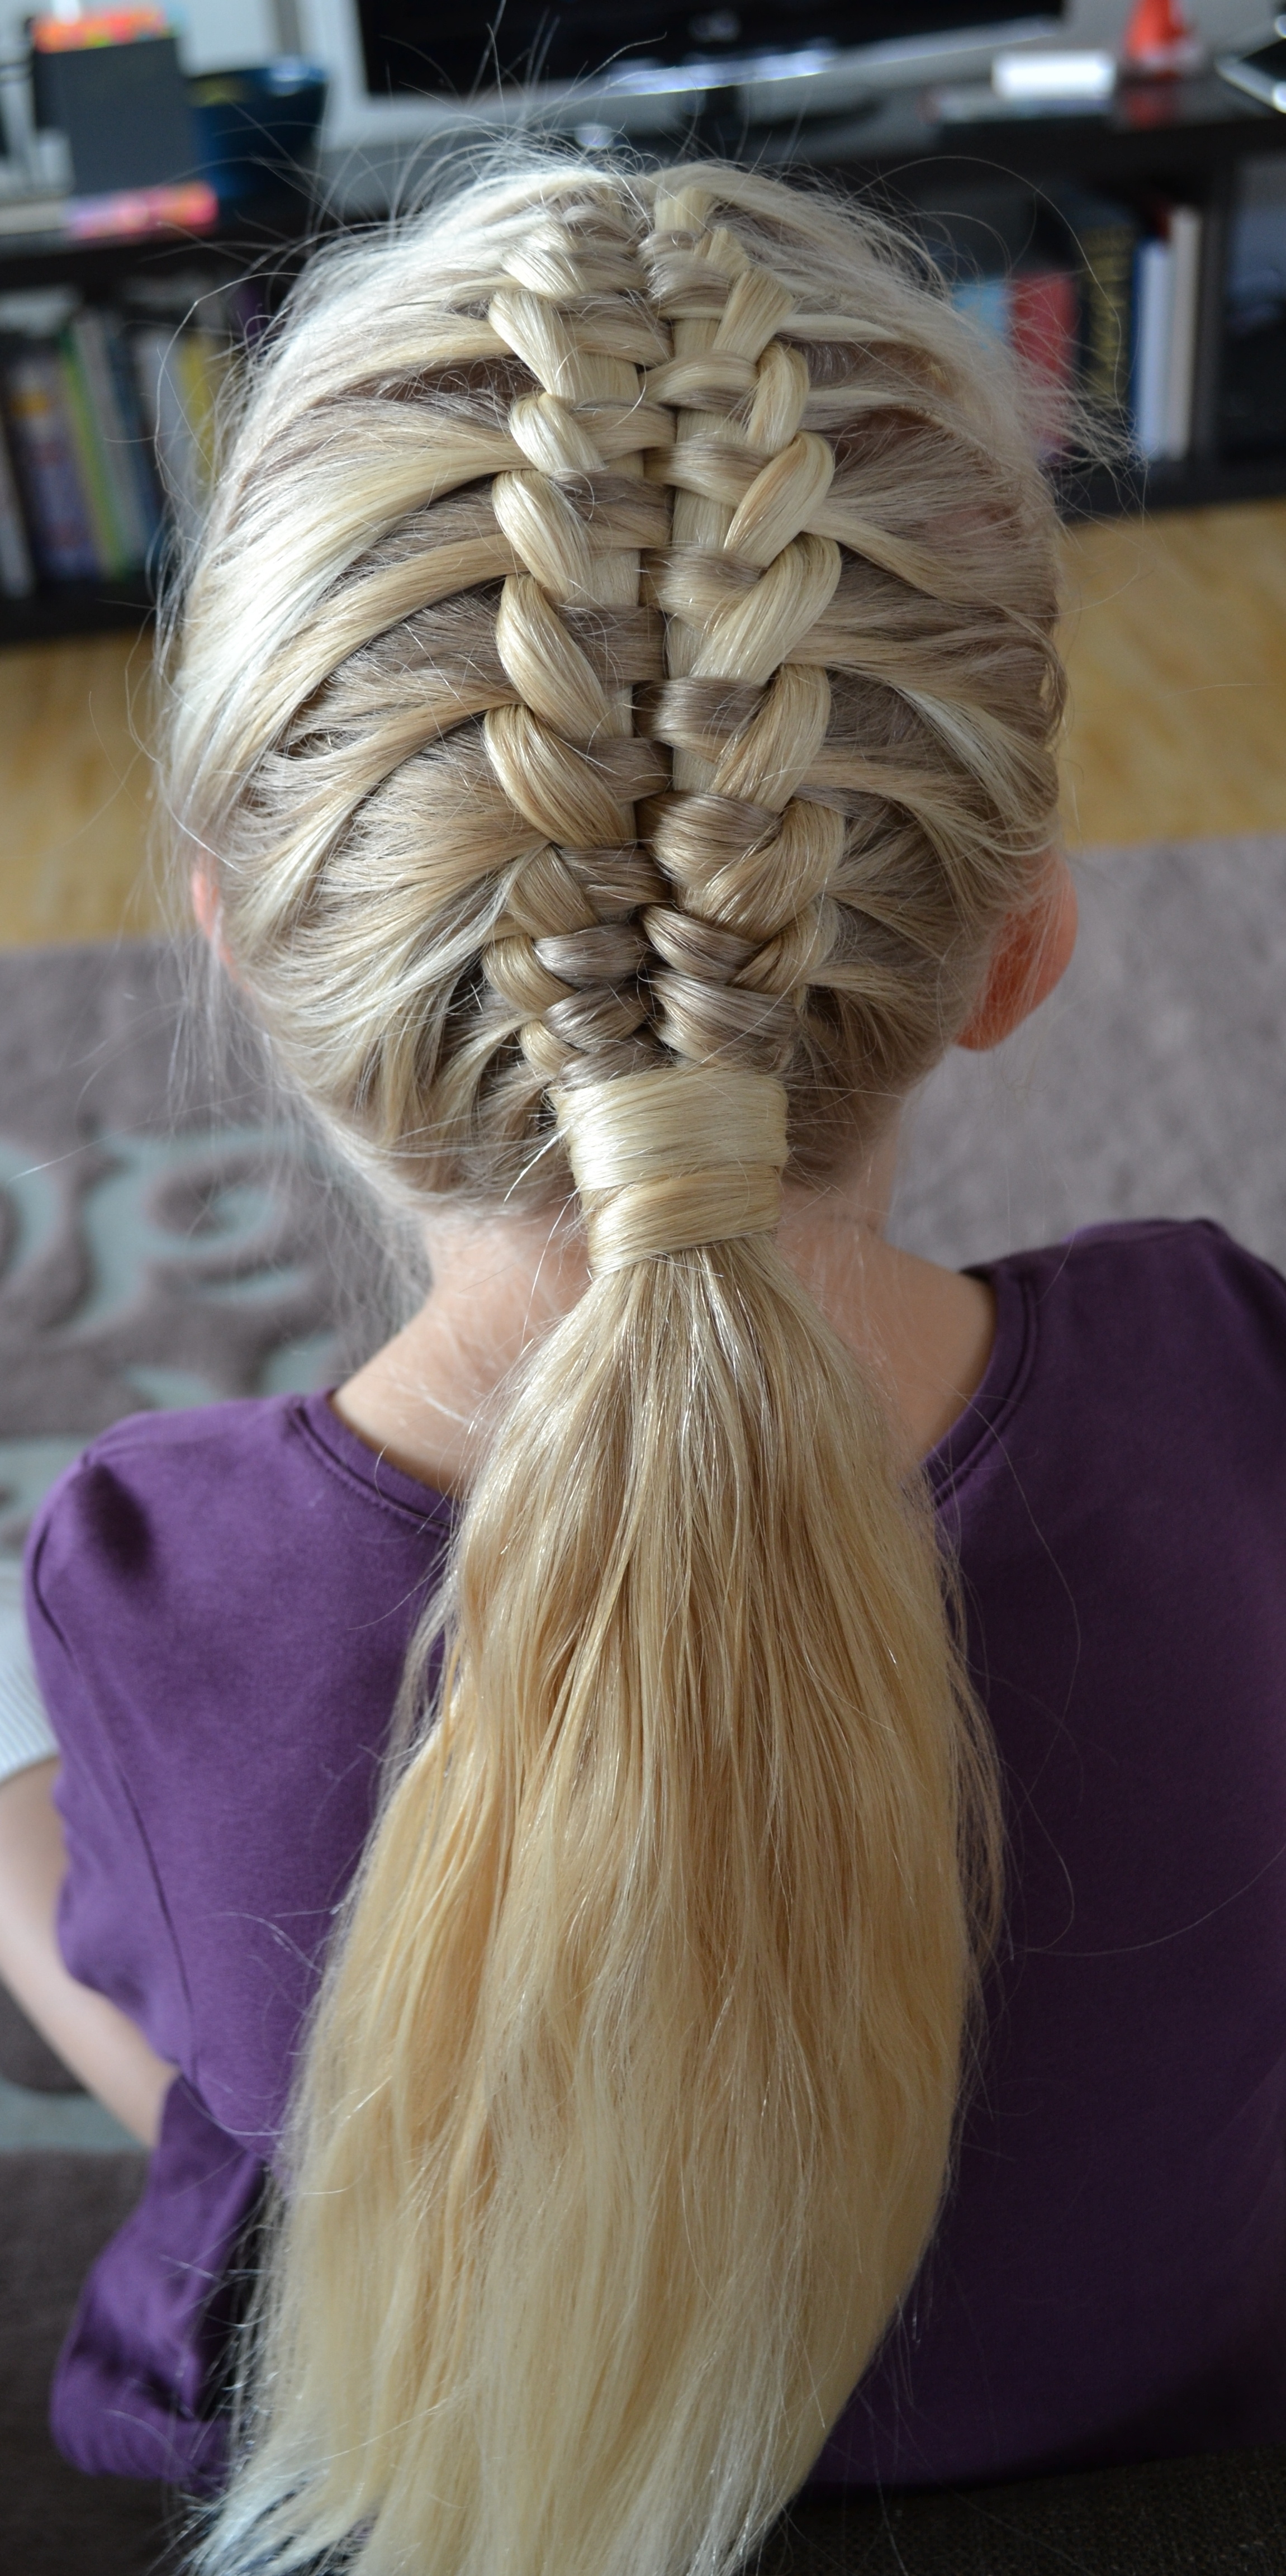 Jennishairdays Throughout Latest French Braid Ponytail Hairstyles With Bubbles (Gallery 20 of 20)